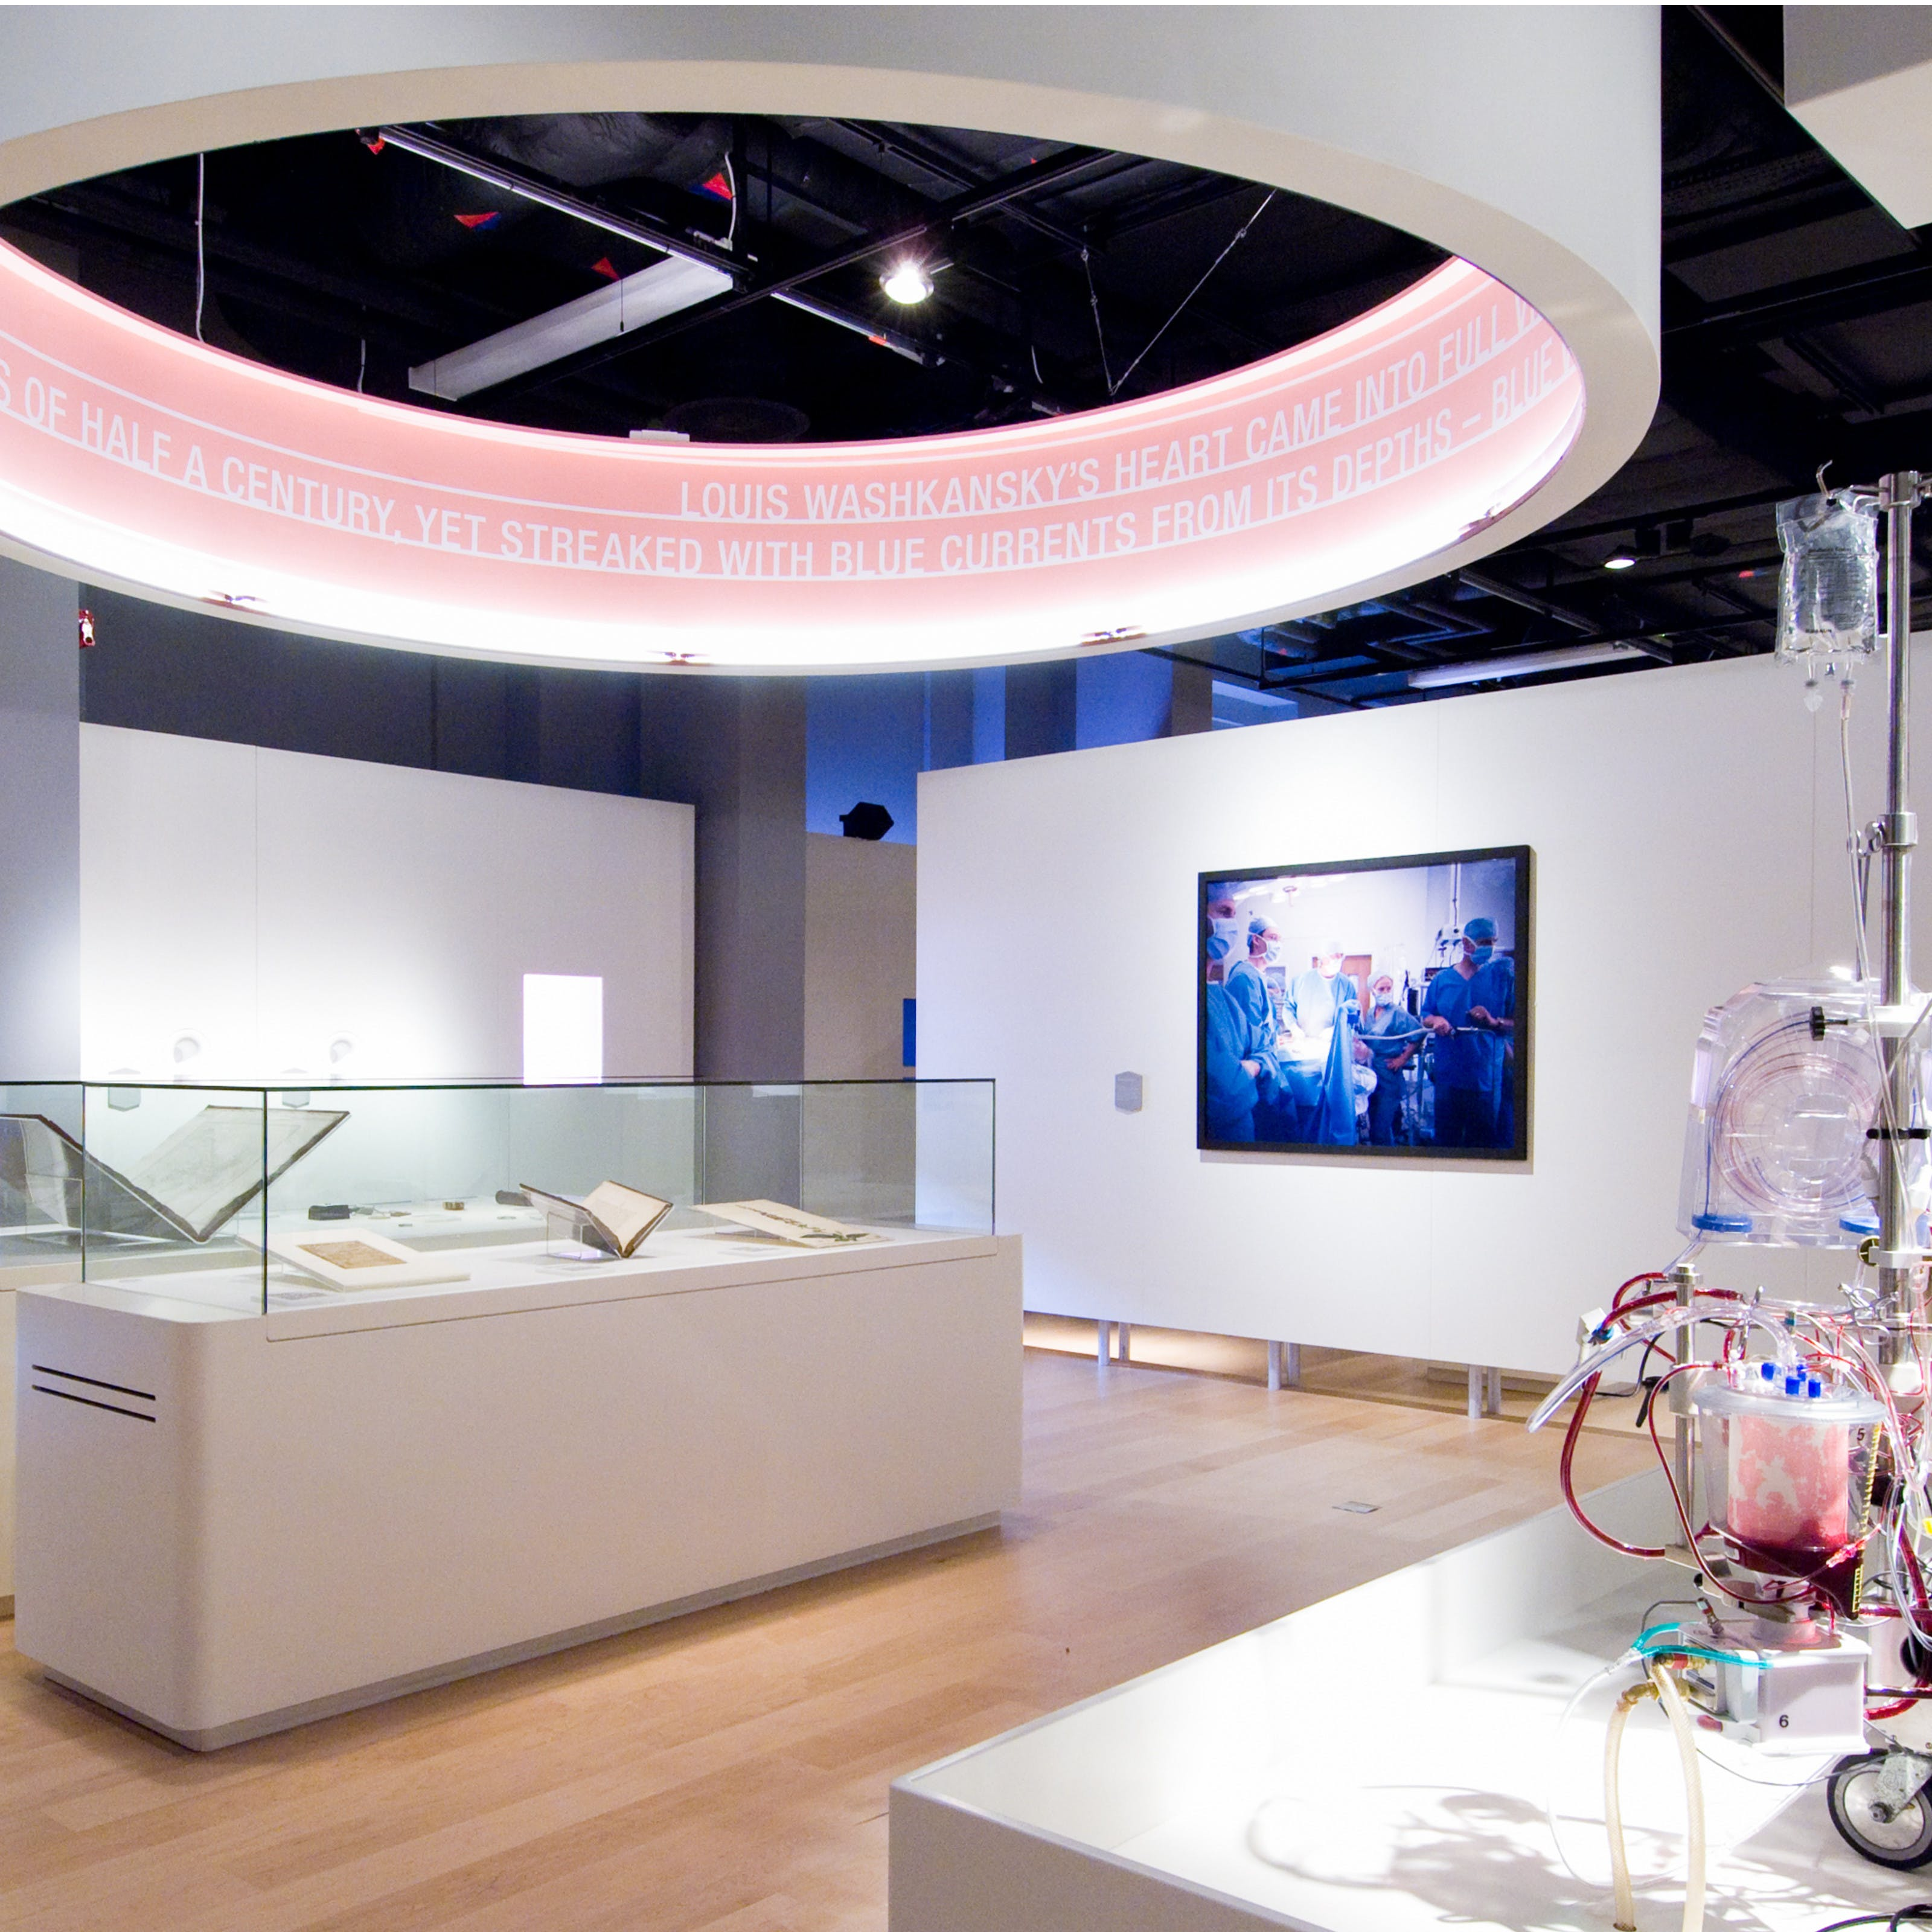 Photograph of The Heart exhibition gallery at Wellcome Collection.